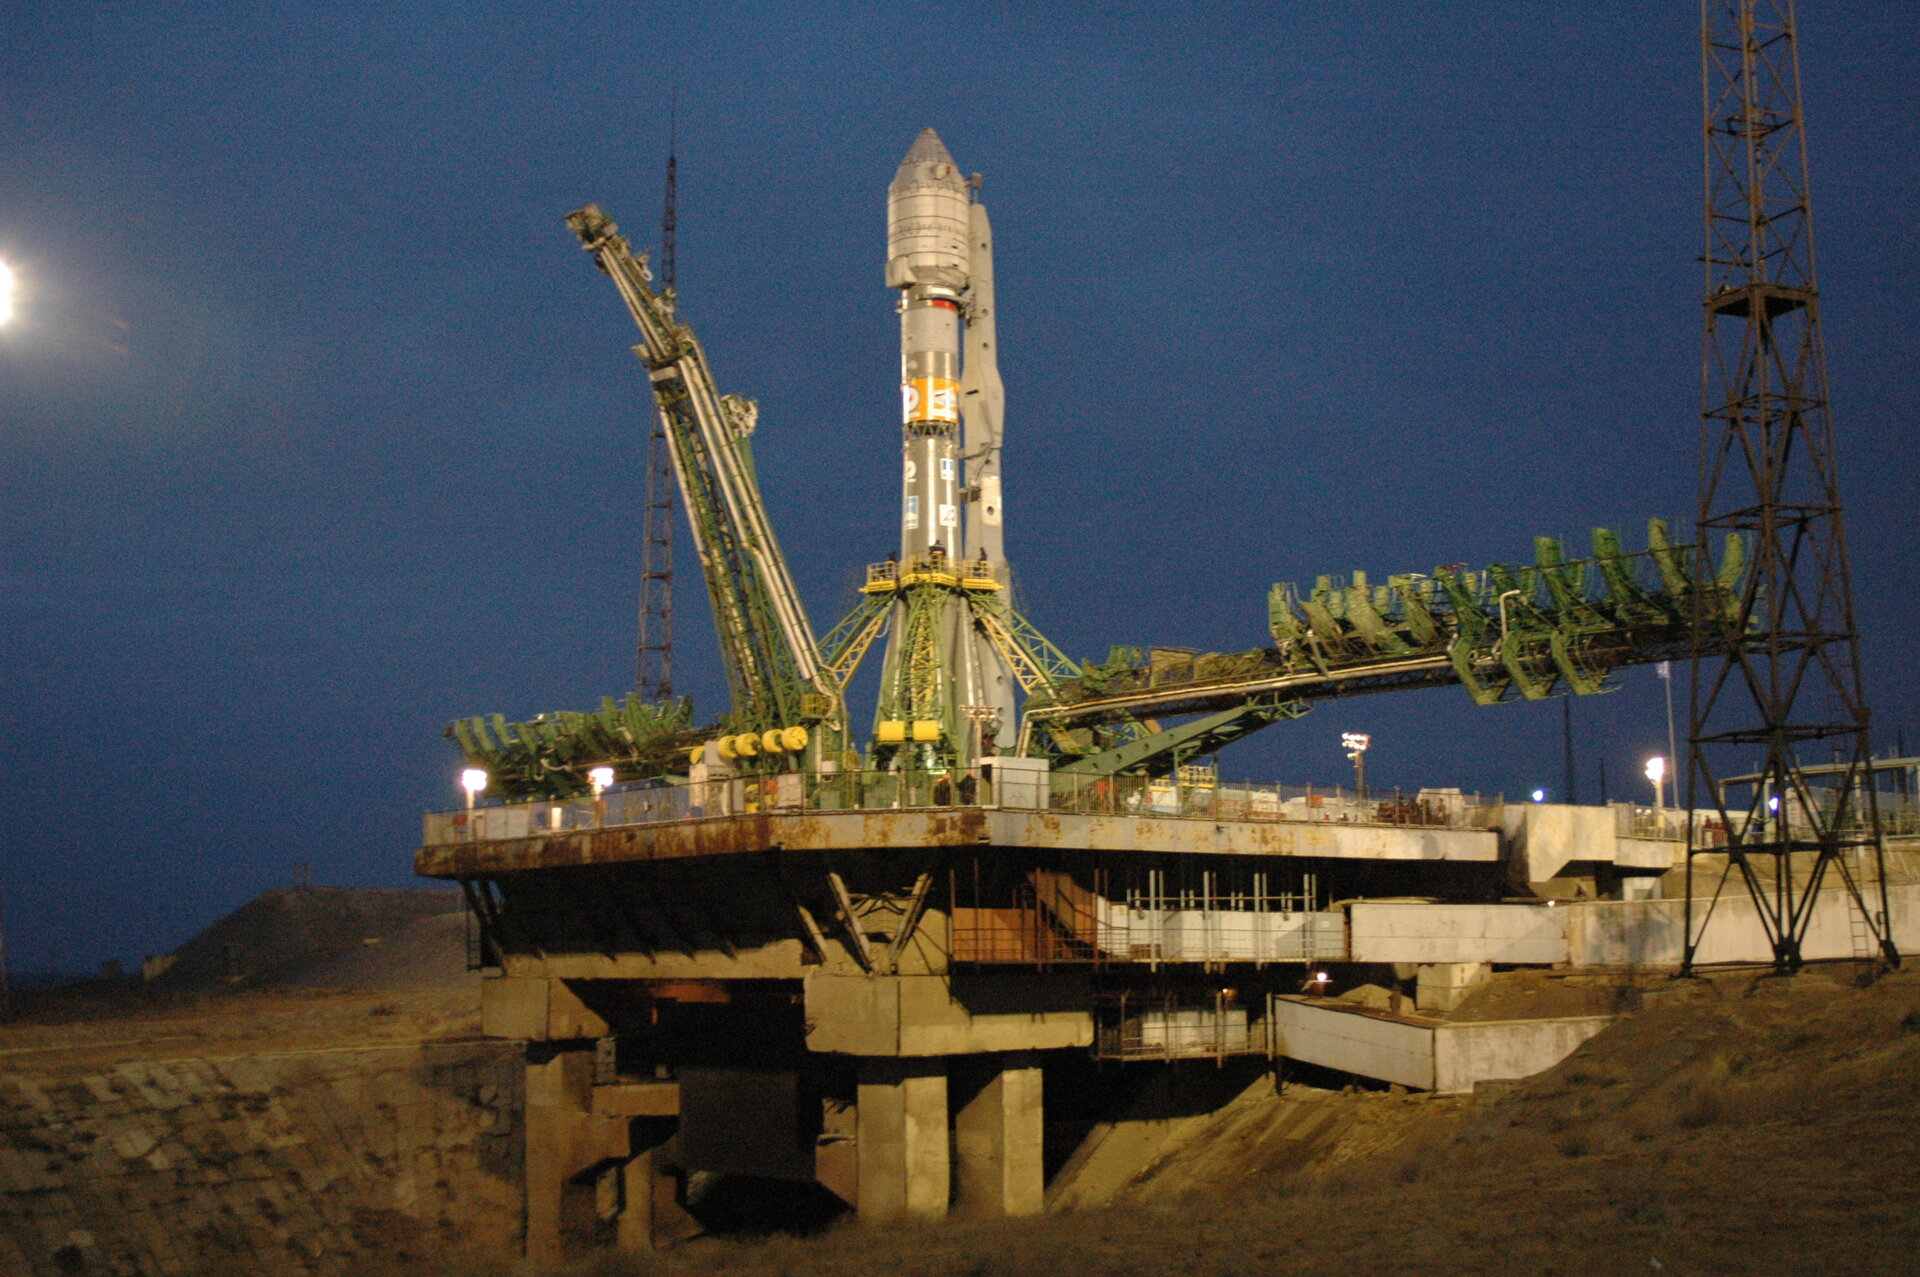 GIOVE-A on the launch pad